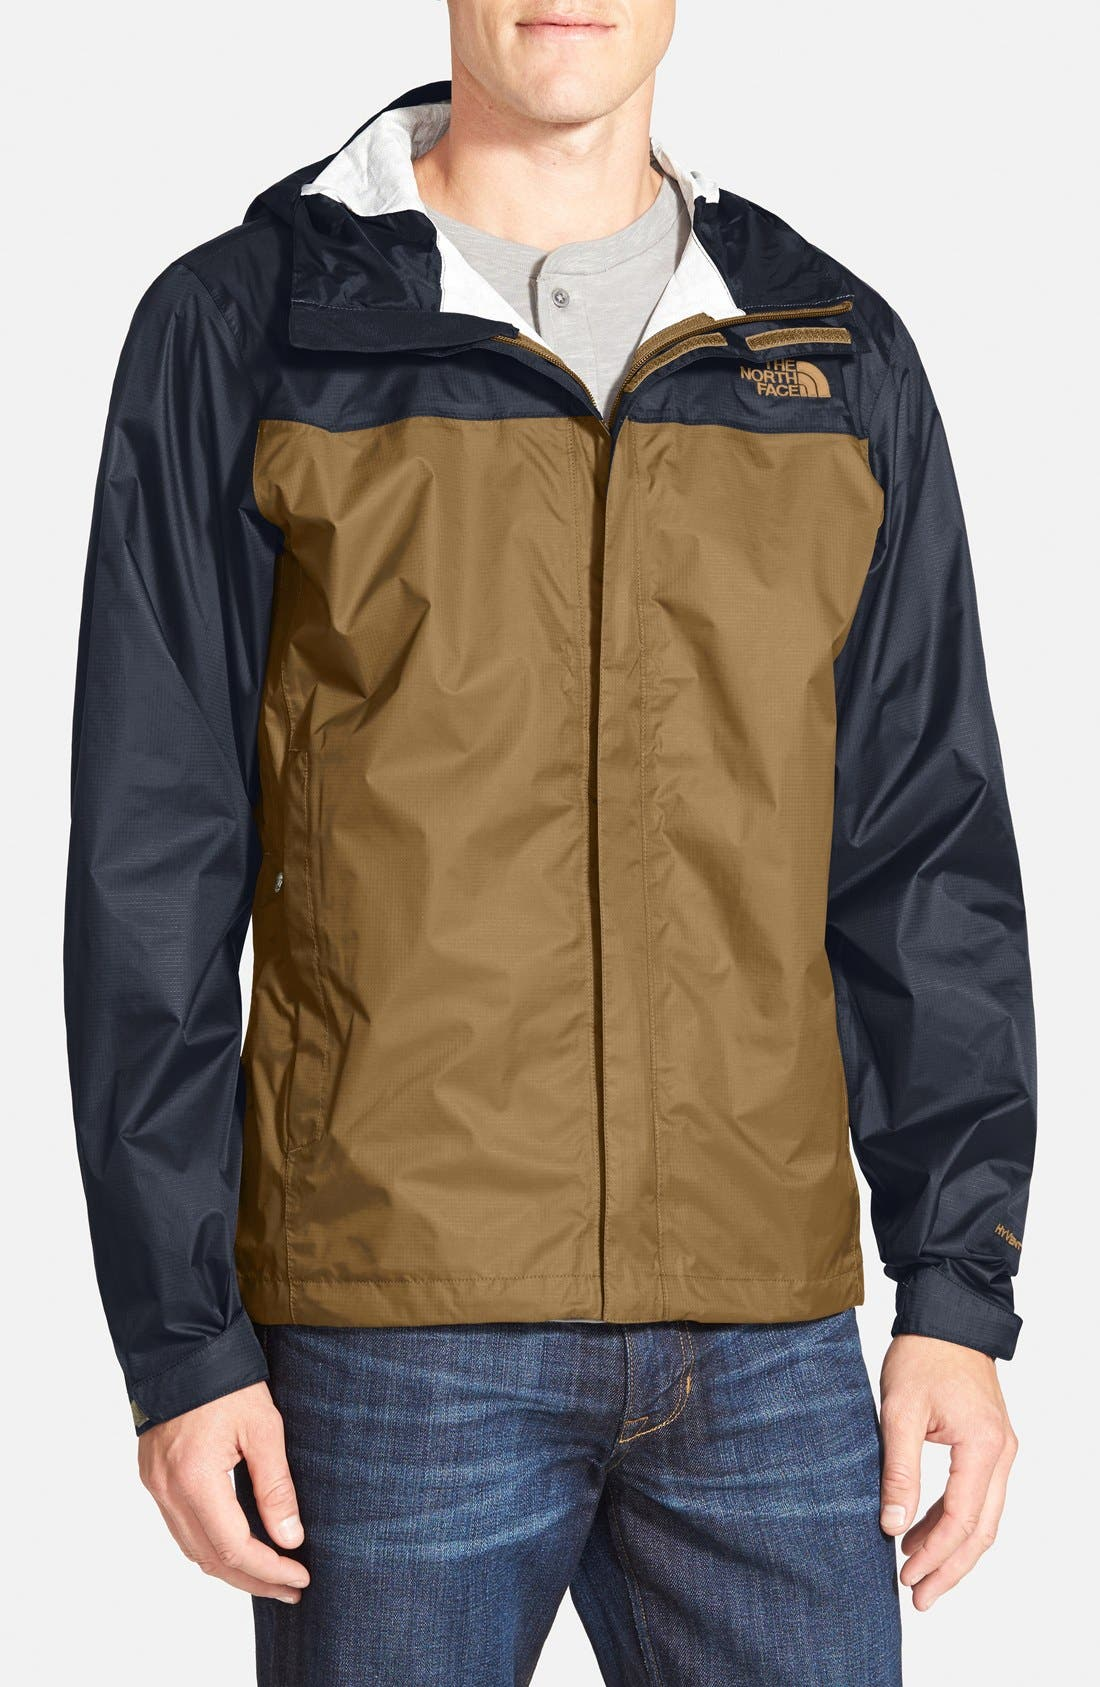 Venture Waterproof Jacket,                         Main,                         color, Dijon Brown/ Urban Navy